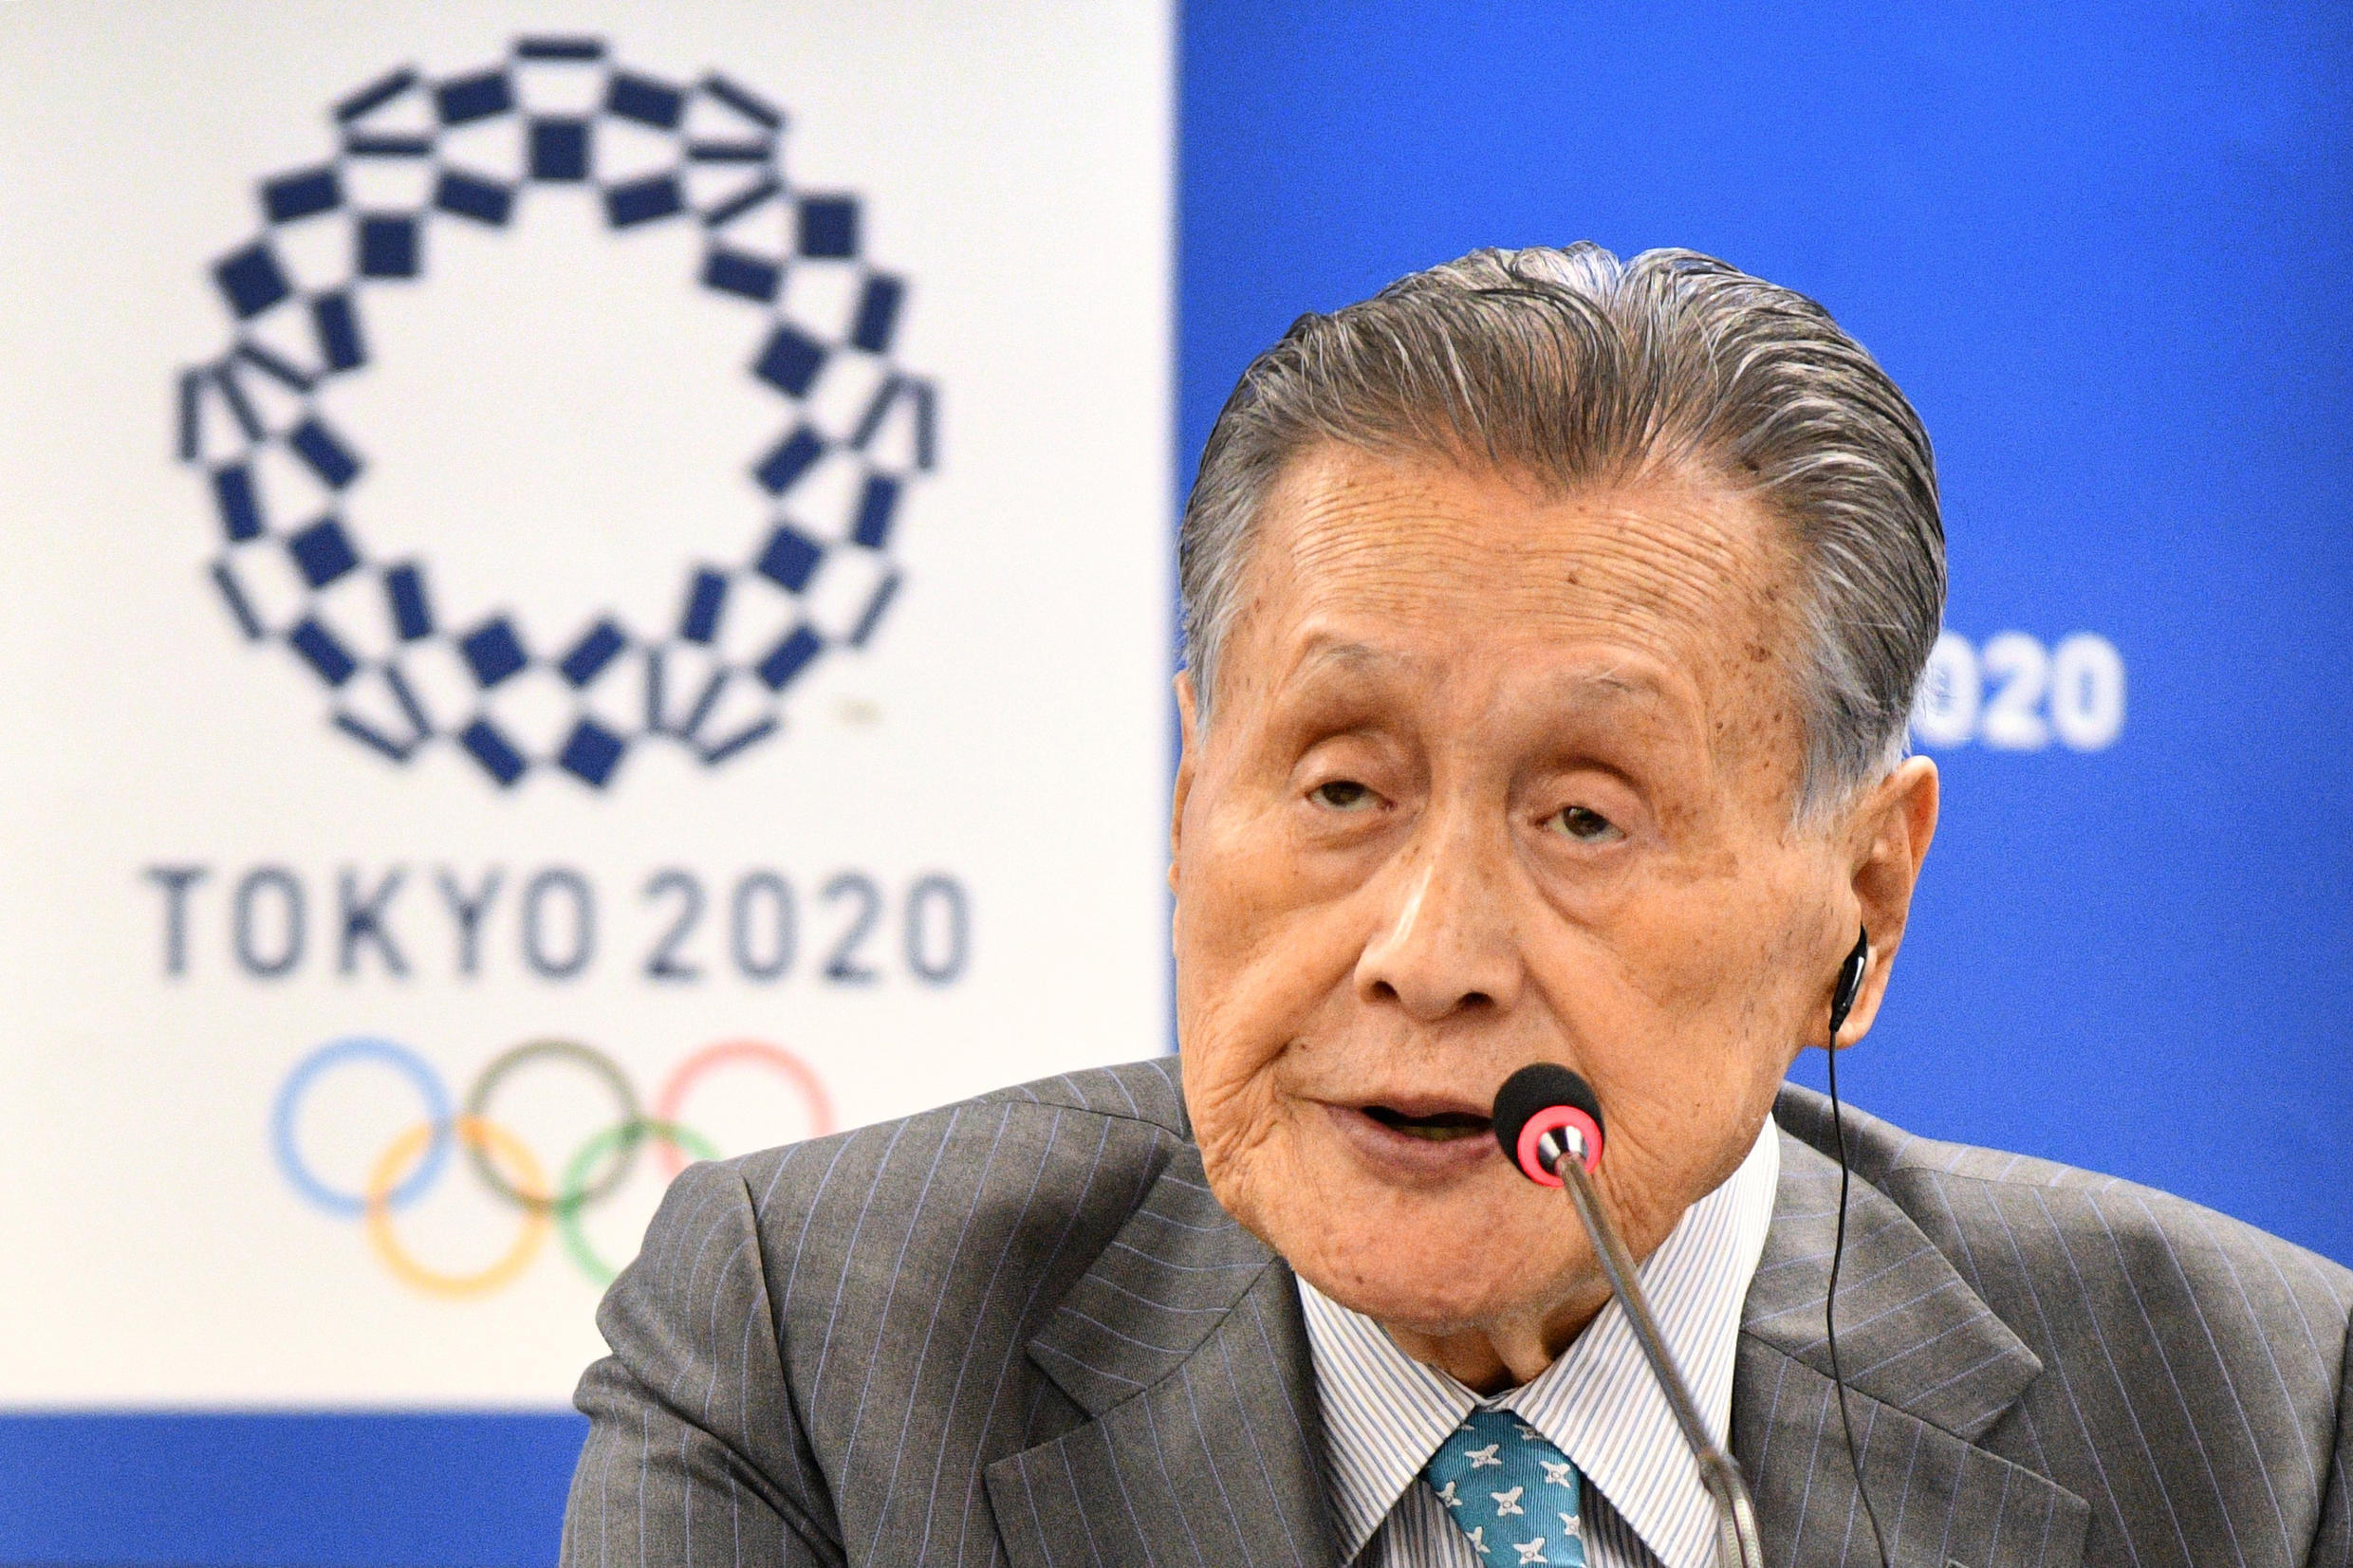 Tokyo 2020 chief Yoshiro Mori said there was no prospect of delaying the Olympics to 2022